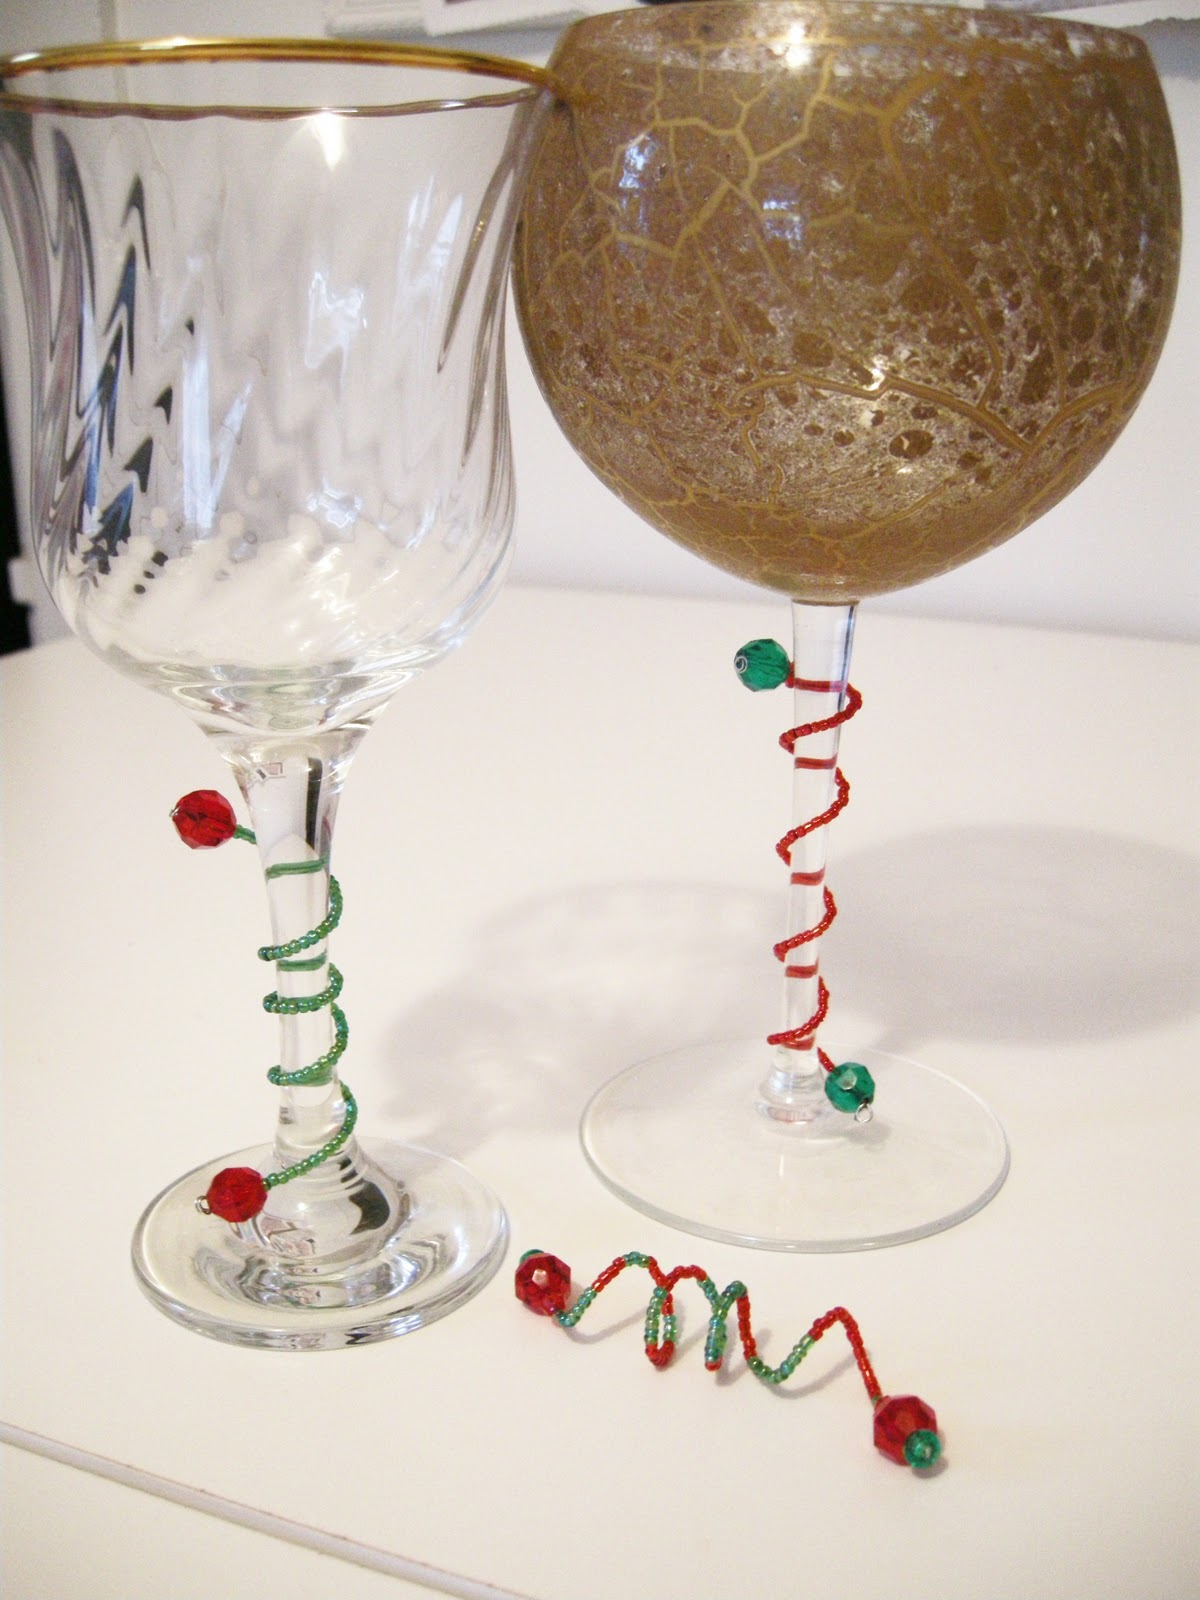 Etcetorize show and tell wine gems for Holiday wine glass crafts